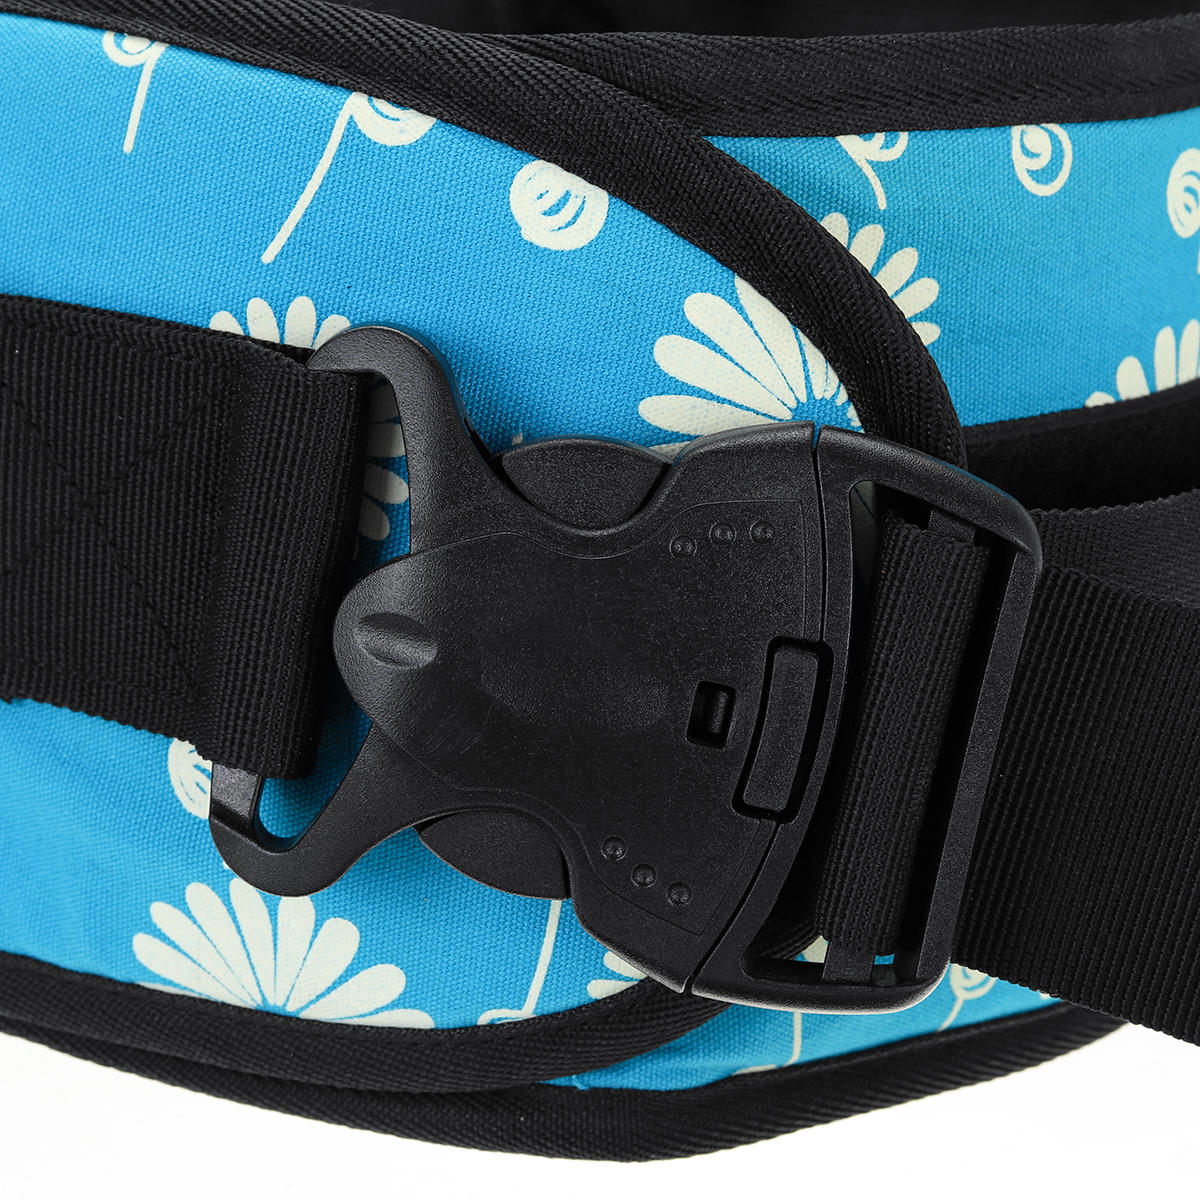 Baby Carrier Waist Stool Baby Hipseat Baby Carrier Waist Stool Kids Bench Sling Hipseat Waist Belt Backpack Infant Hip Support Seat Cushion - 5